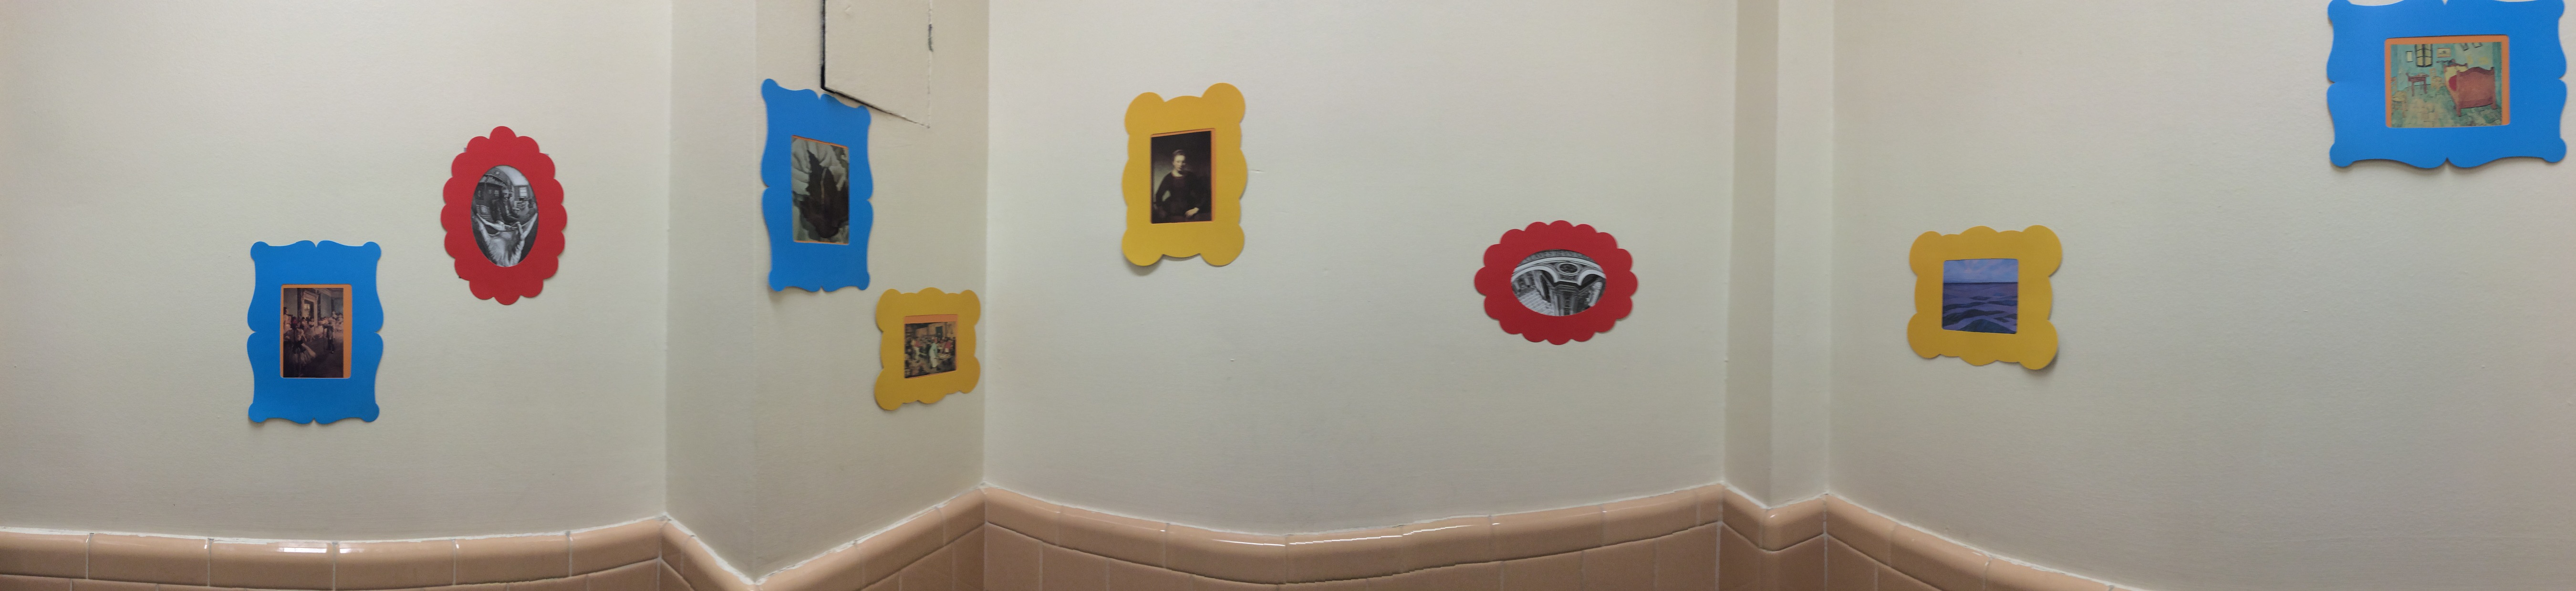 One Last Thing We Have A Bathroom In Our Classroom As Learn High Frequency Words I Hang Them Up There Just More Place To Be Seeing And Reading